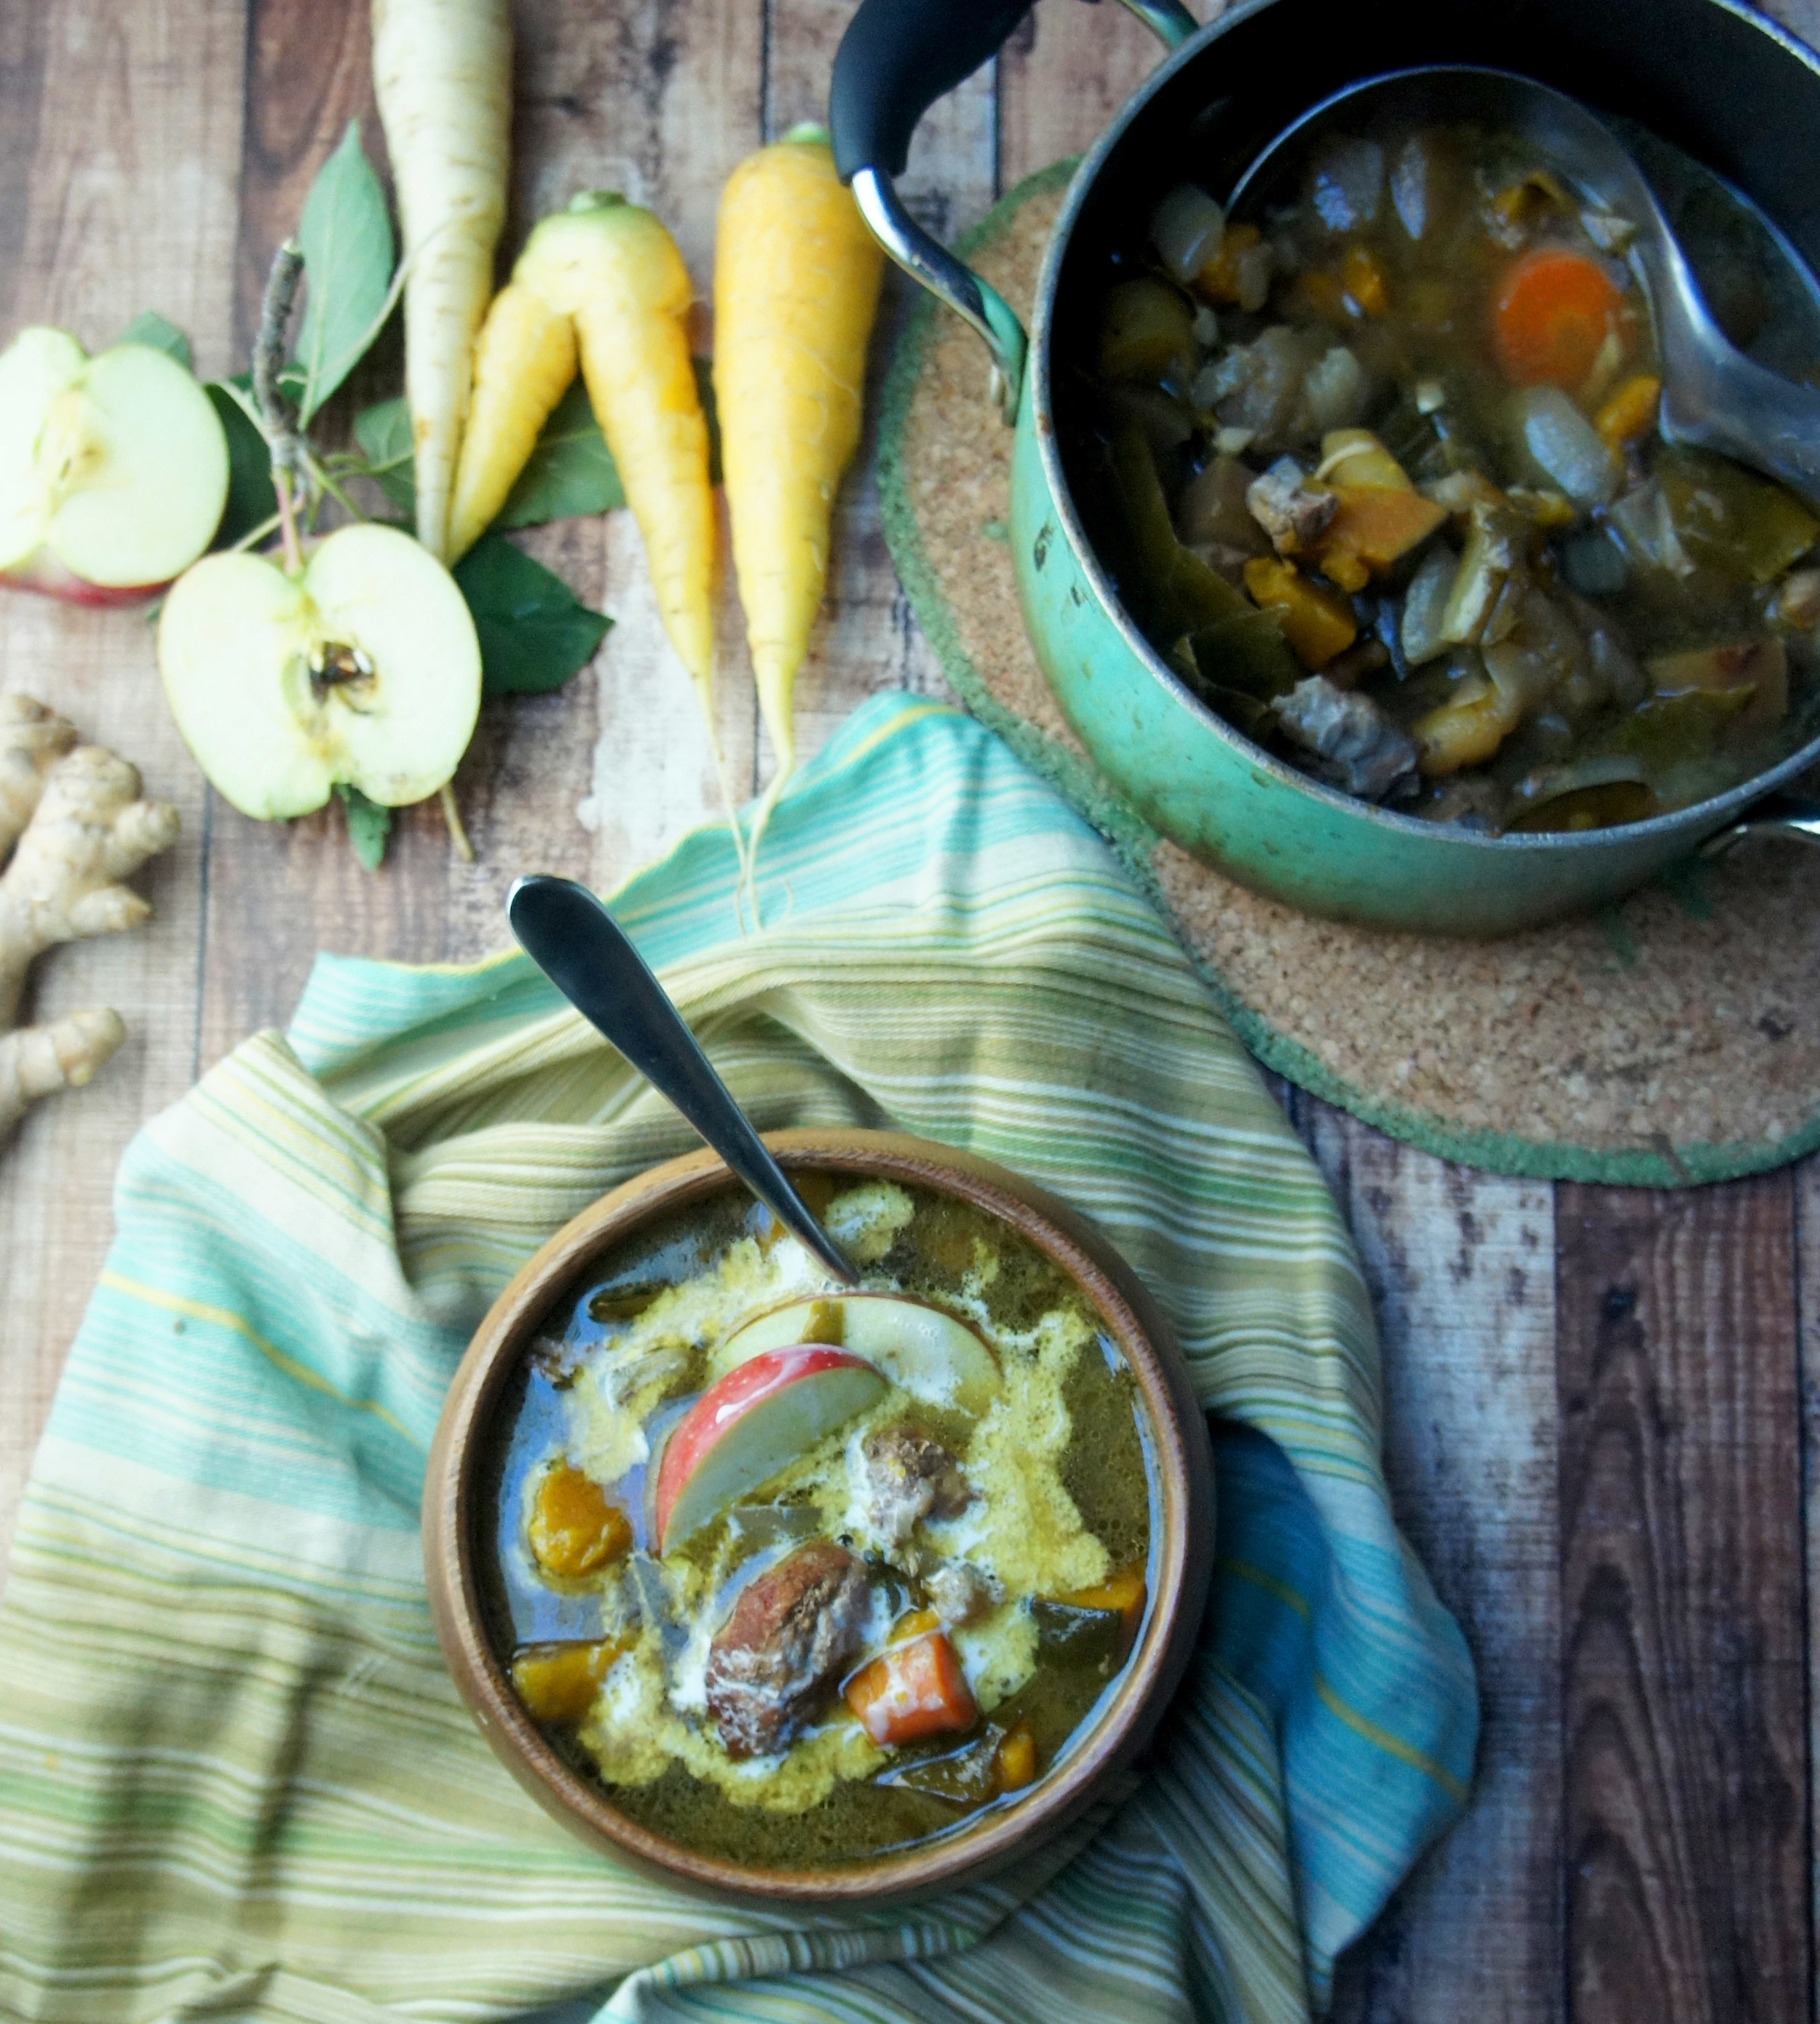 Curried Pork Shoulder with Apple and Collards - a paleo fall stew